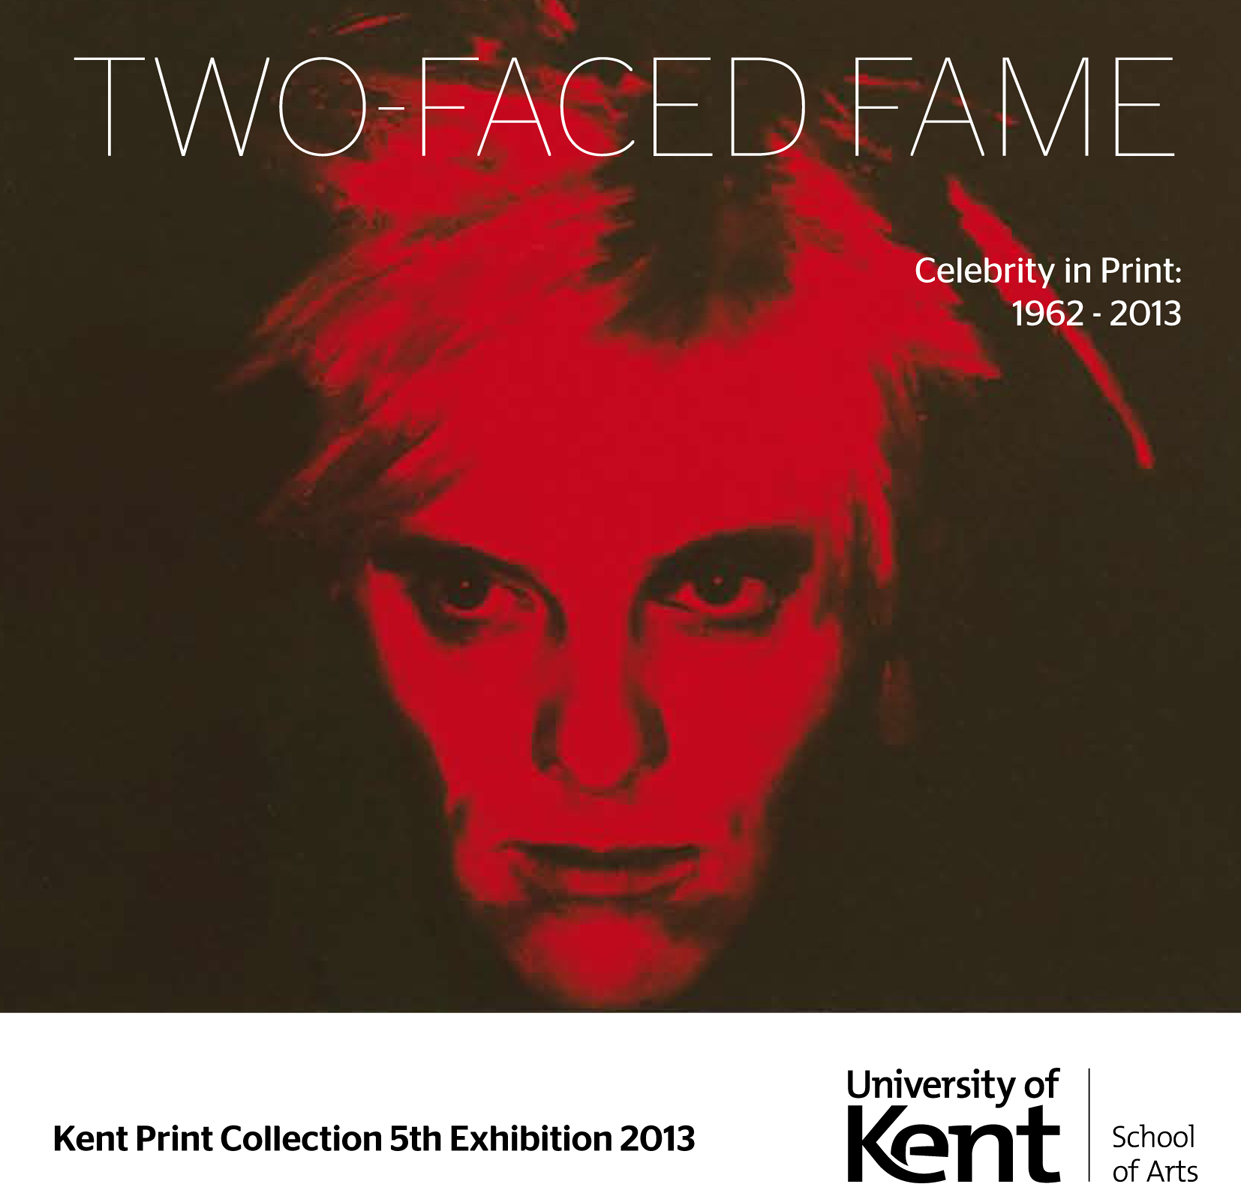 Click on the cover to view this 48-page fine art exhibition catalogue.